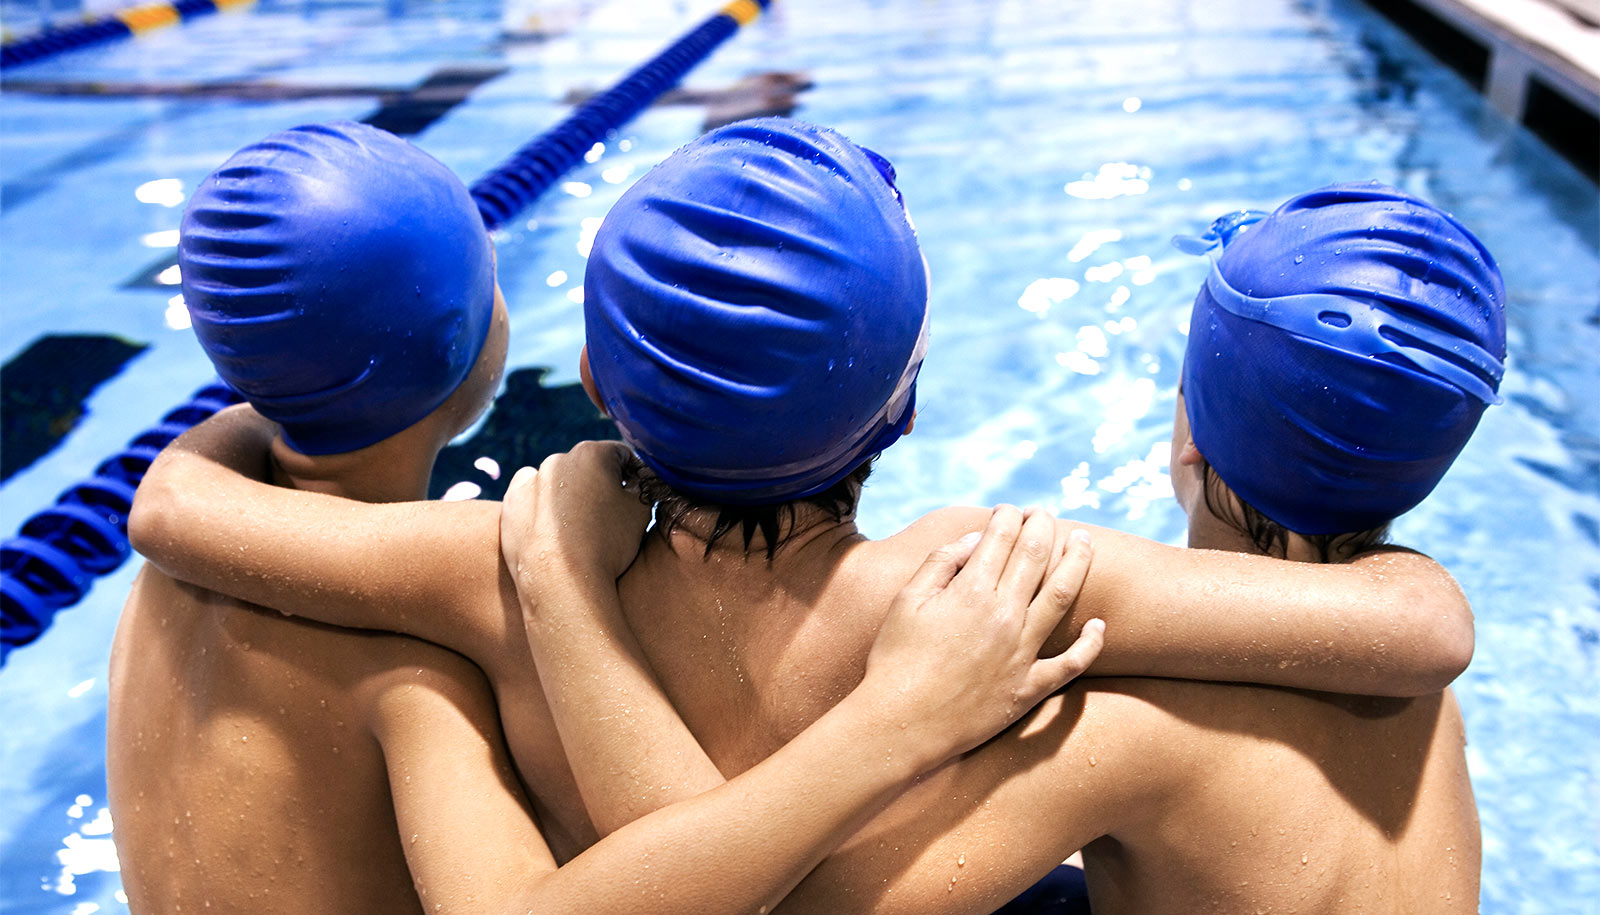 Preteen boys who play team sports have less depression